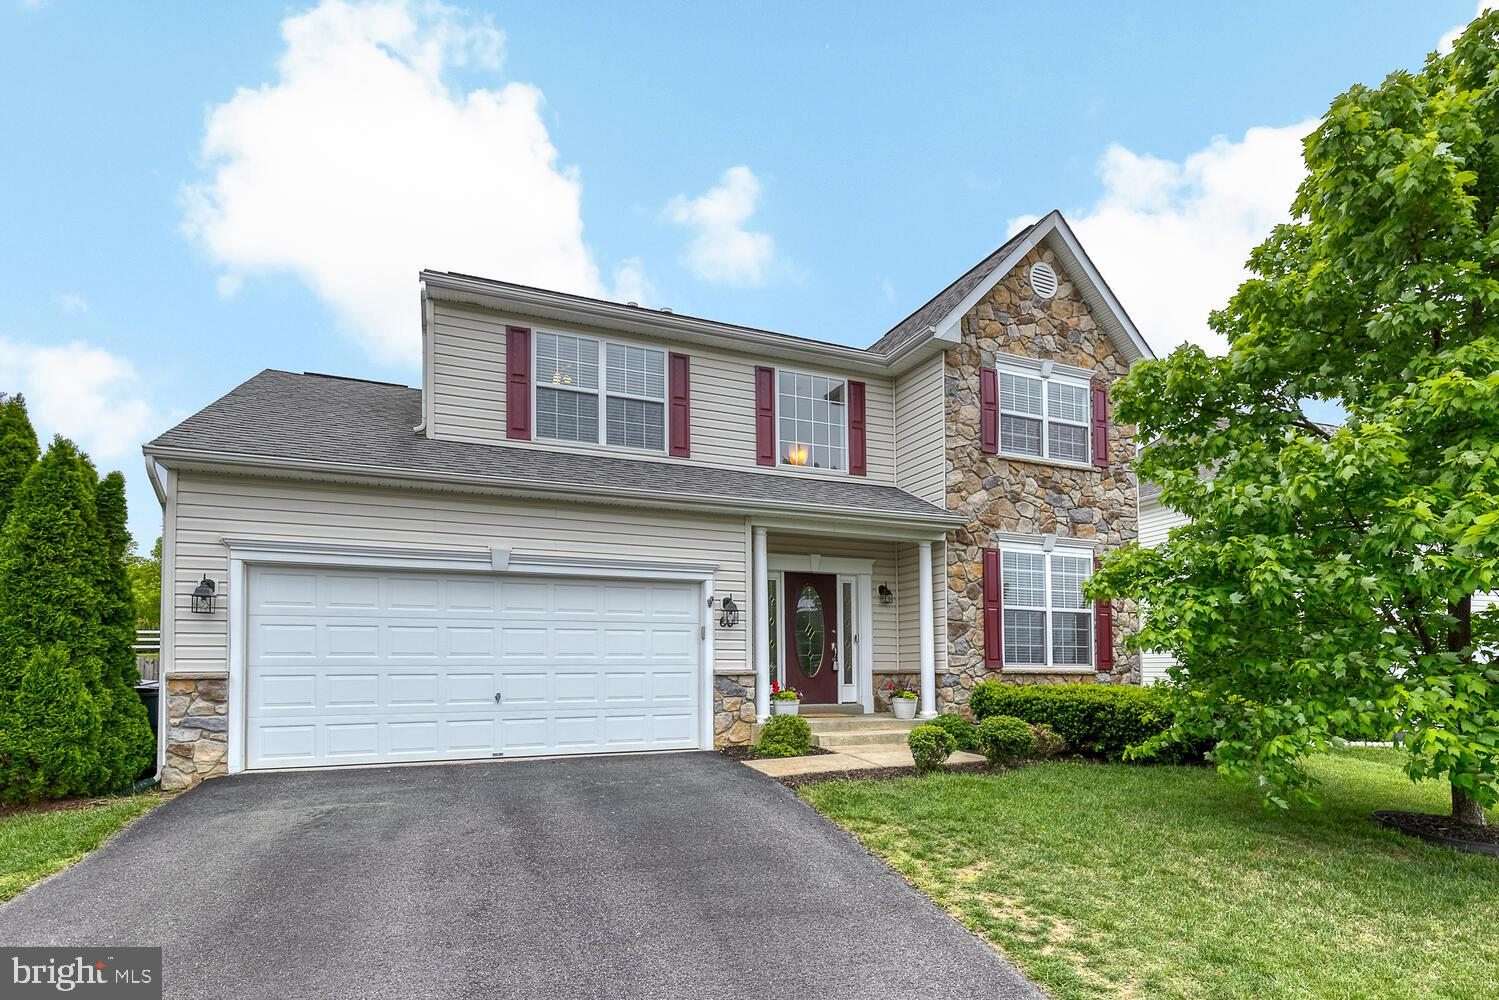 Enjoy over 3266 square feet in this three level, 4 bedroom, 3.5 bath home in the Seasons Landing sub